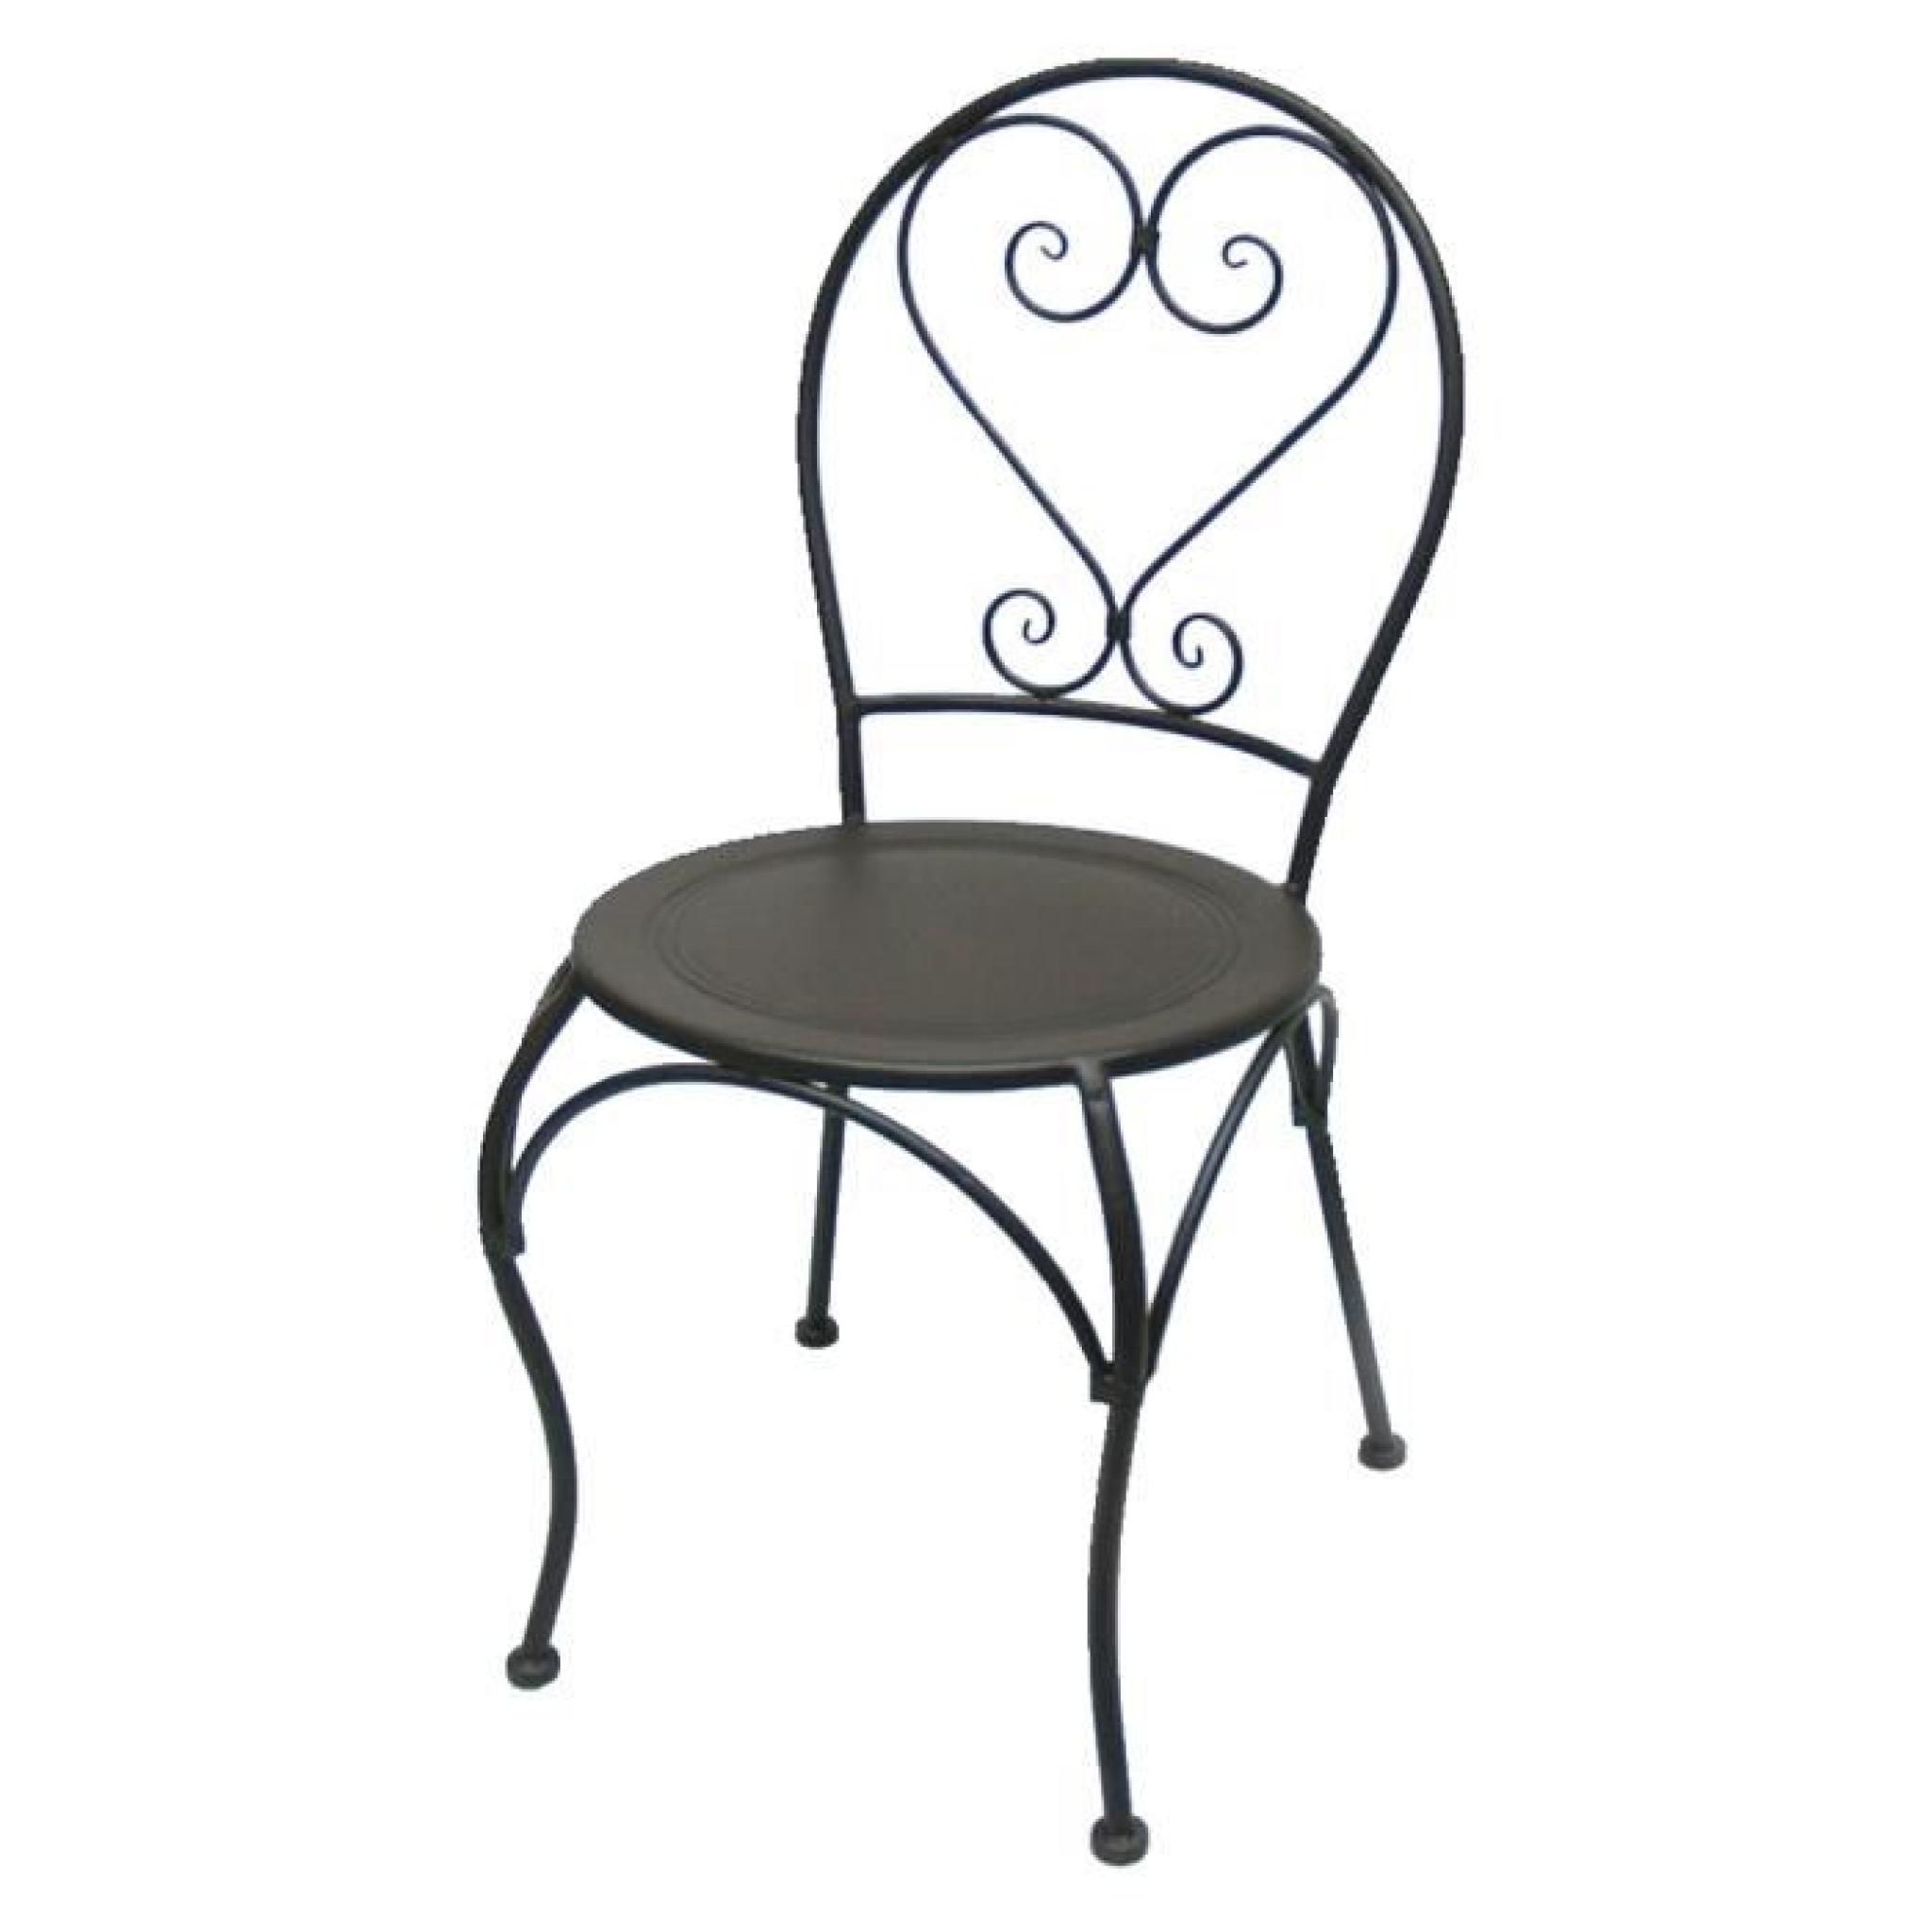 CHAISE RONDE EN FER FORGE CHARME